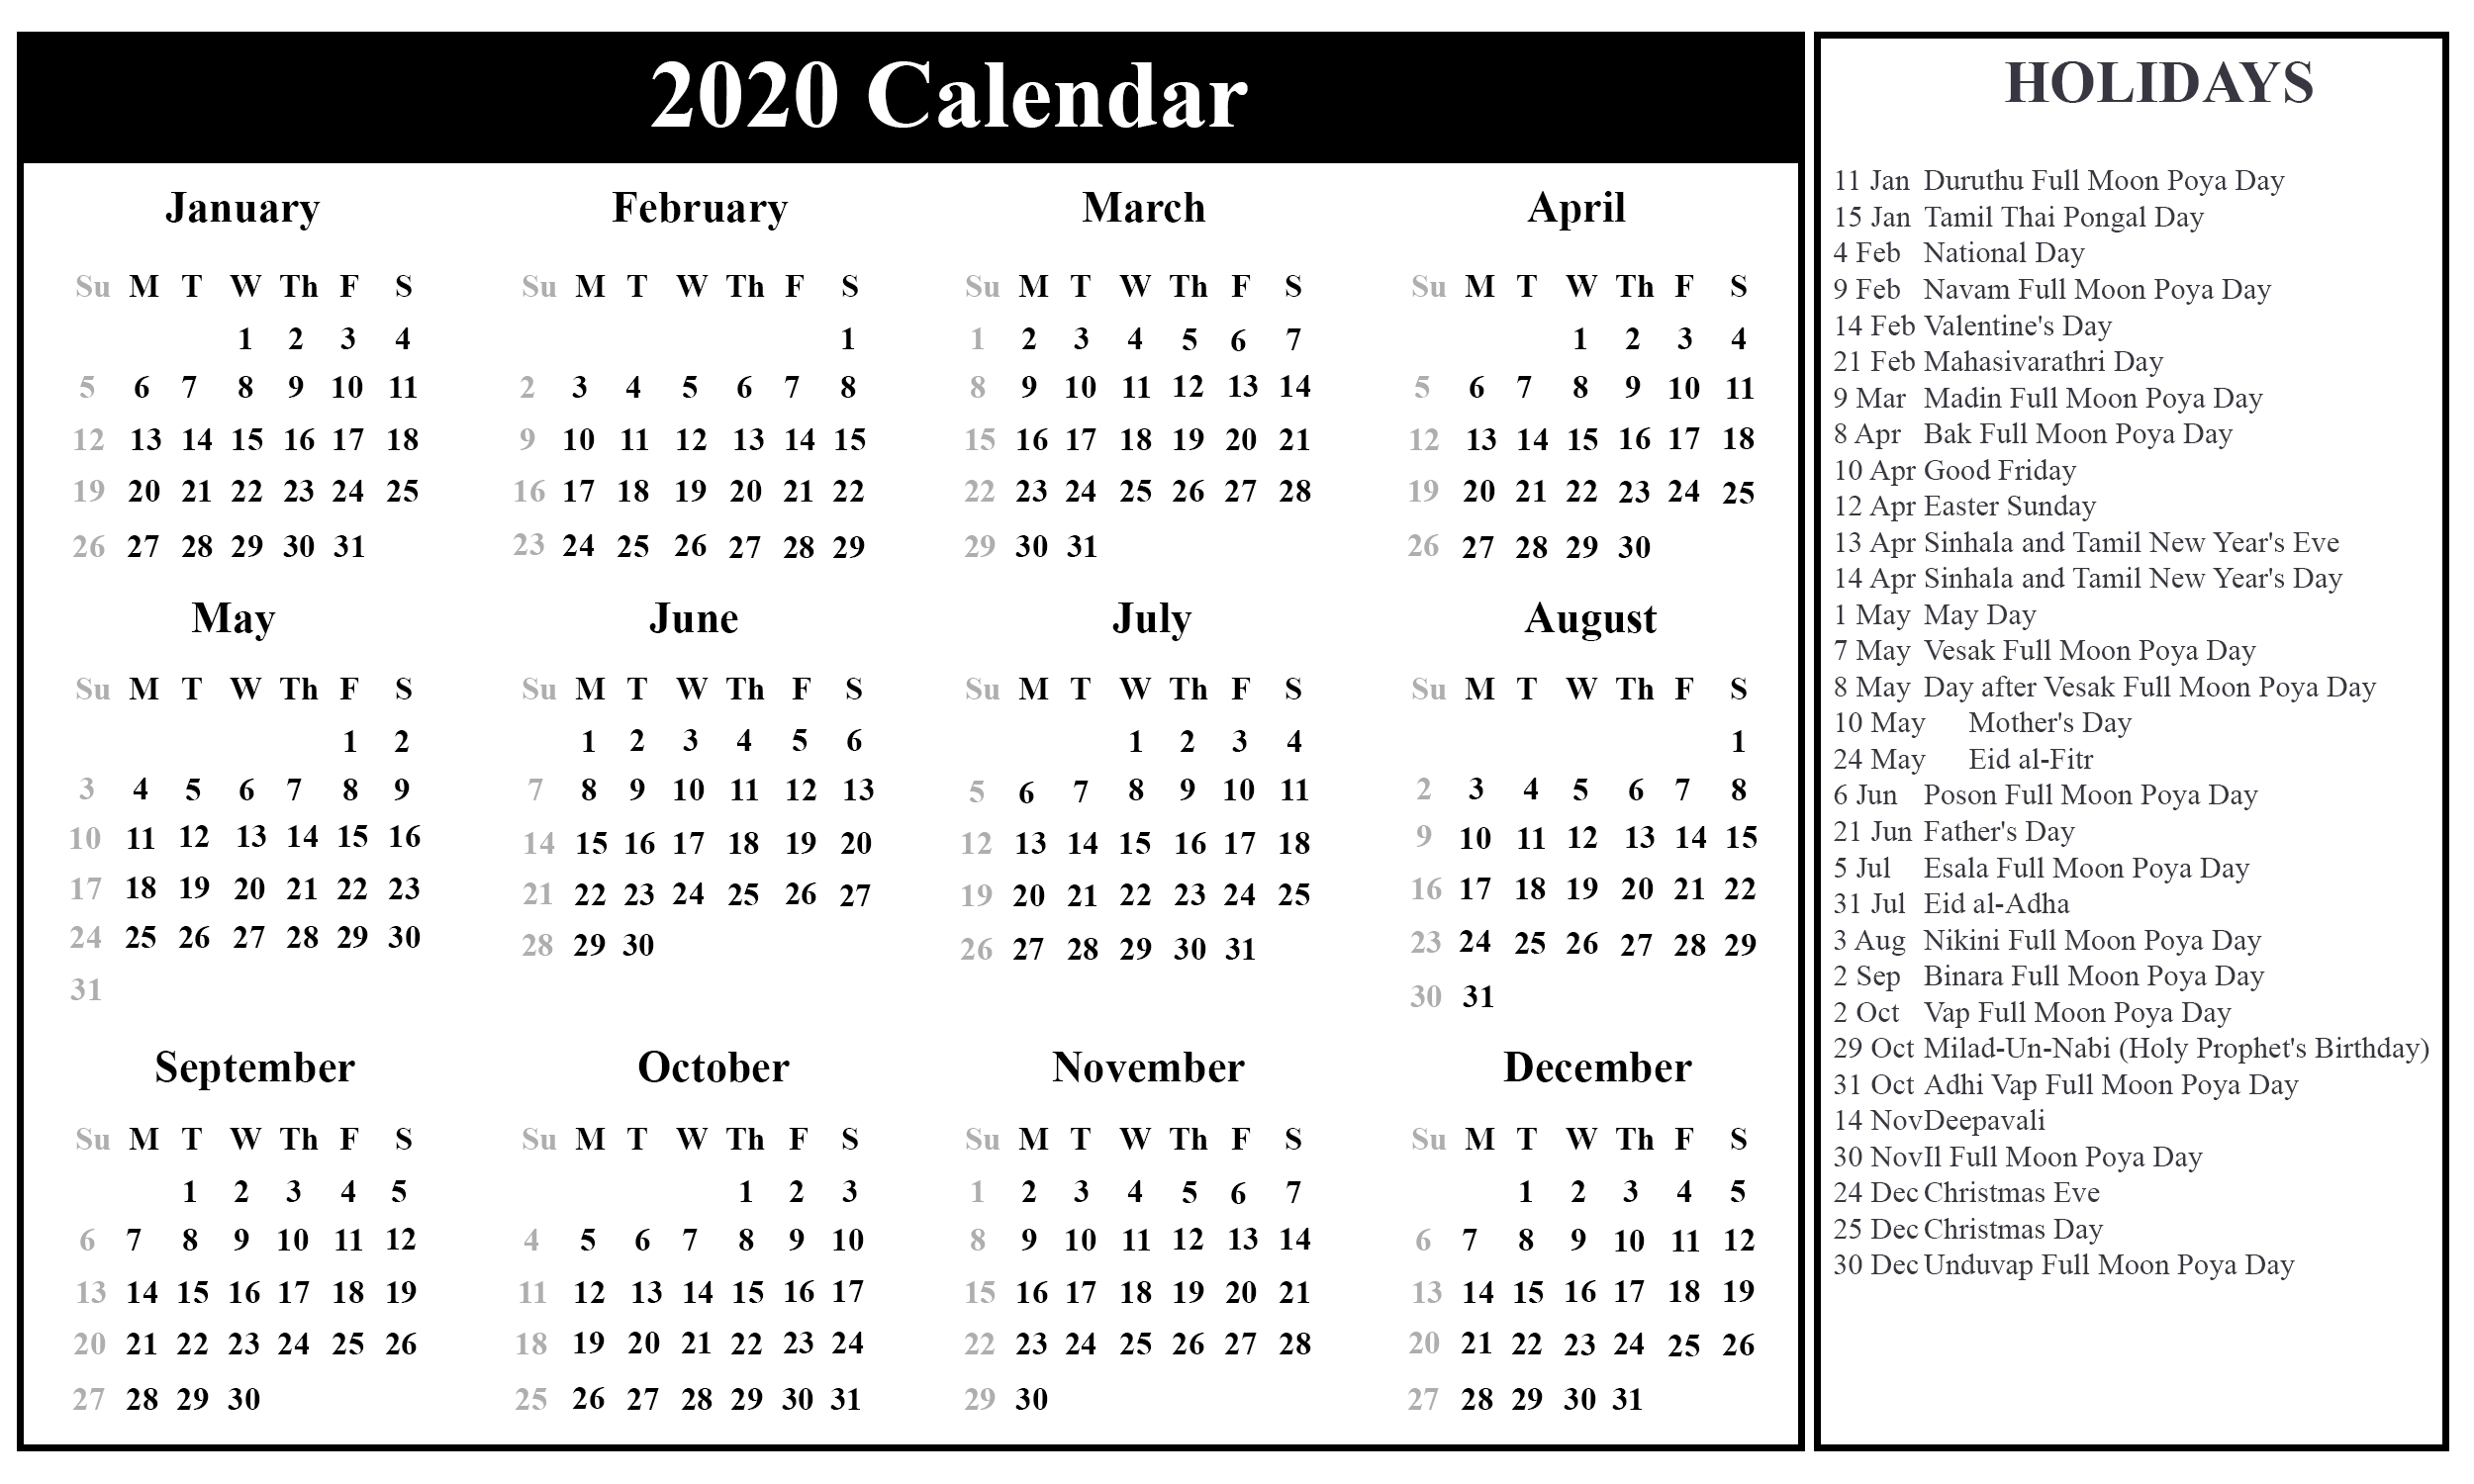 Free Printable Sri Lanka Calendar 2020 With Holidays | Printable throughout List Ofhoidays In Sri Lanka